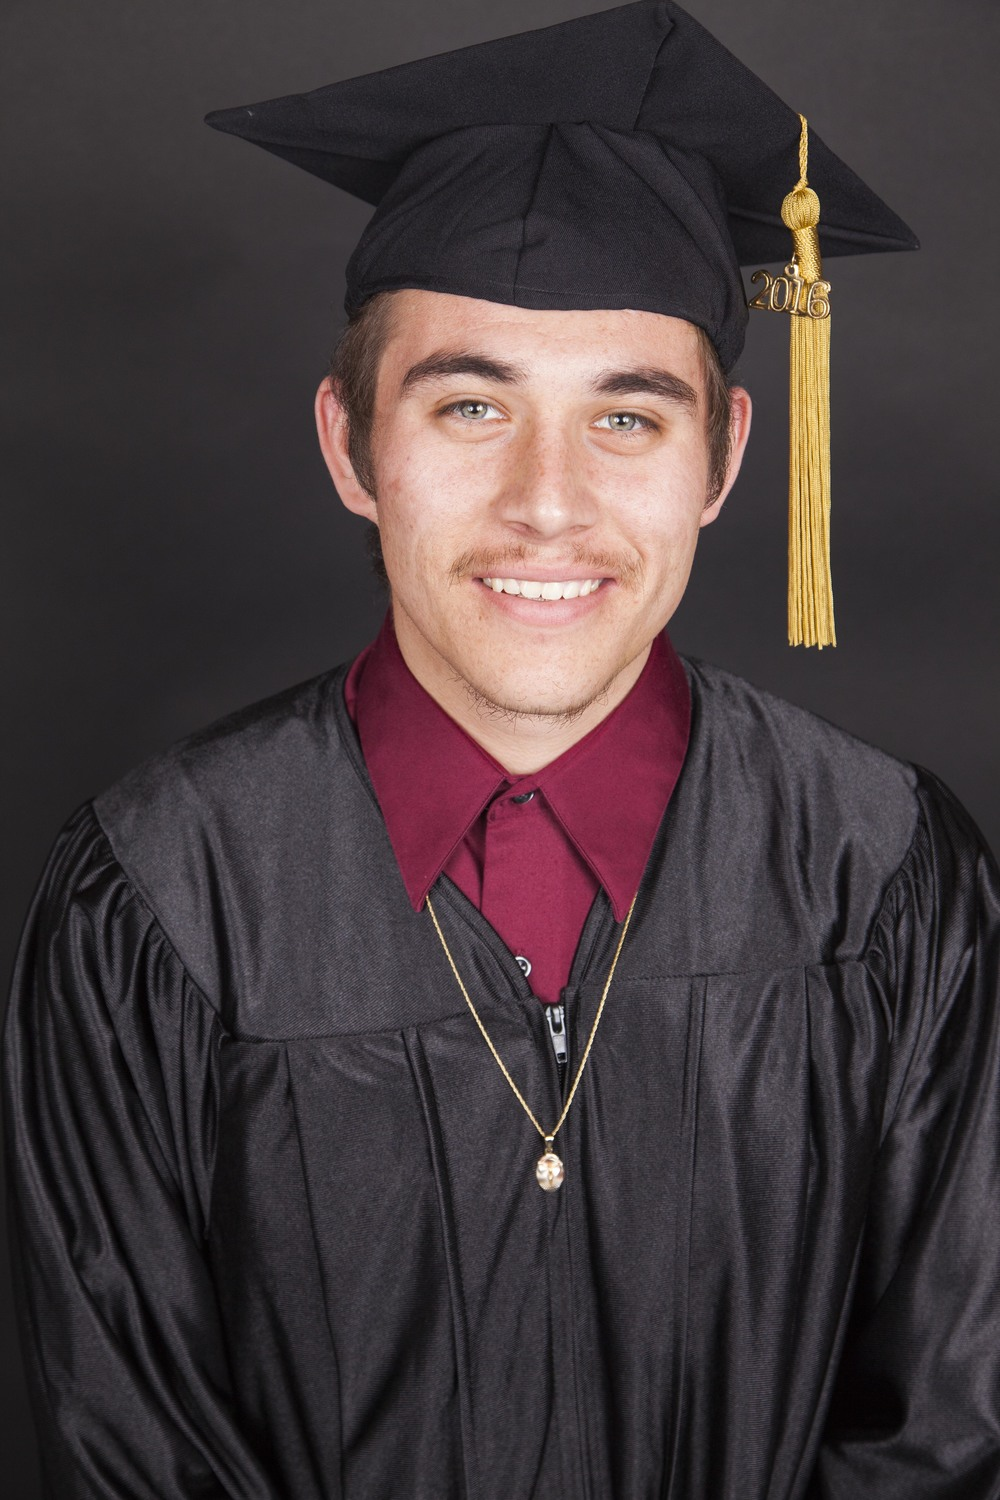 09_2016_Cap&Gown_(photo_credit_Christina_Simons).jpg